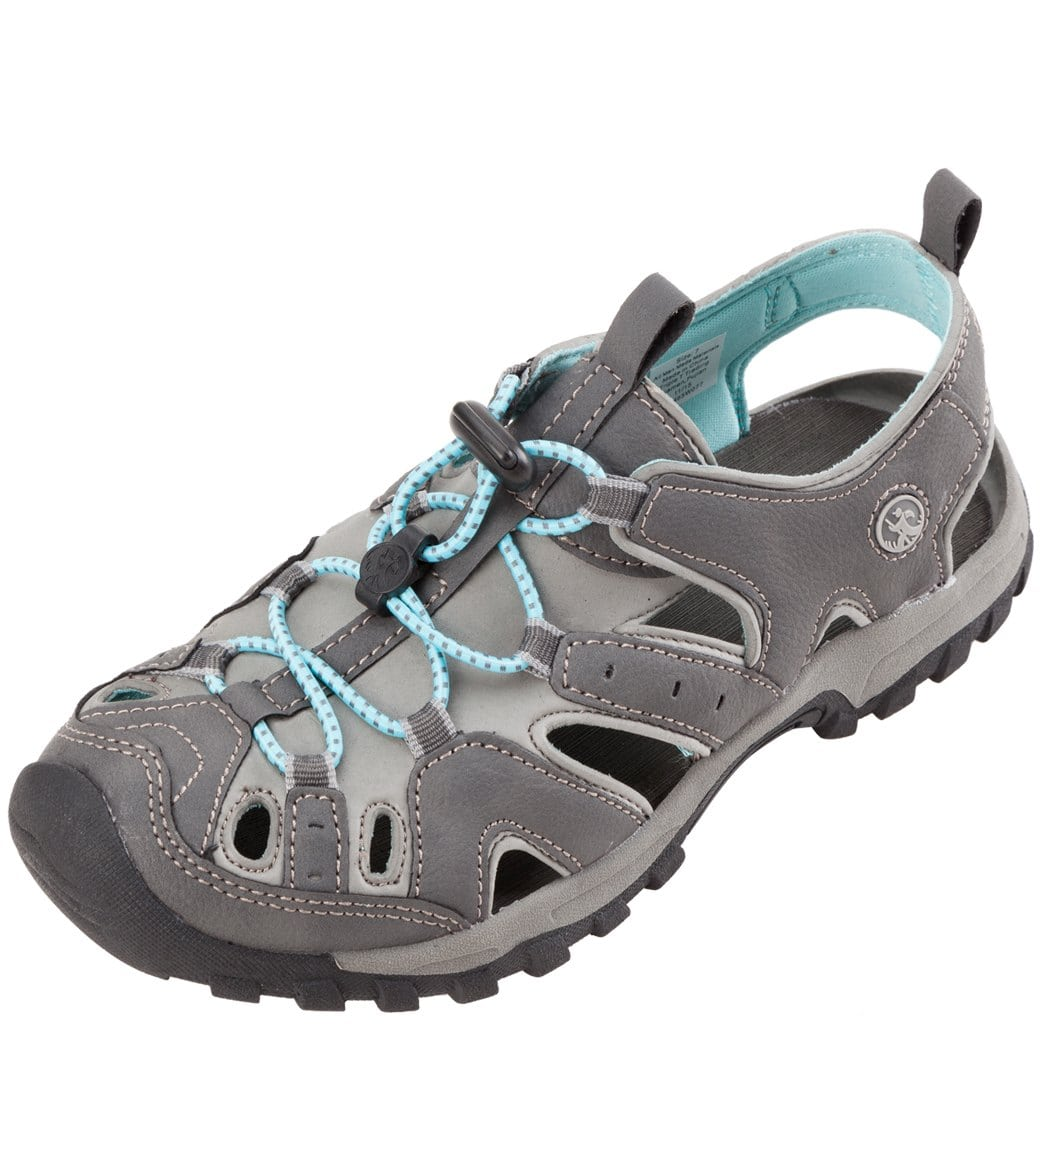 3d020a2550 Women s Water Shoes at SwimOutlet.com